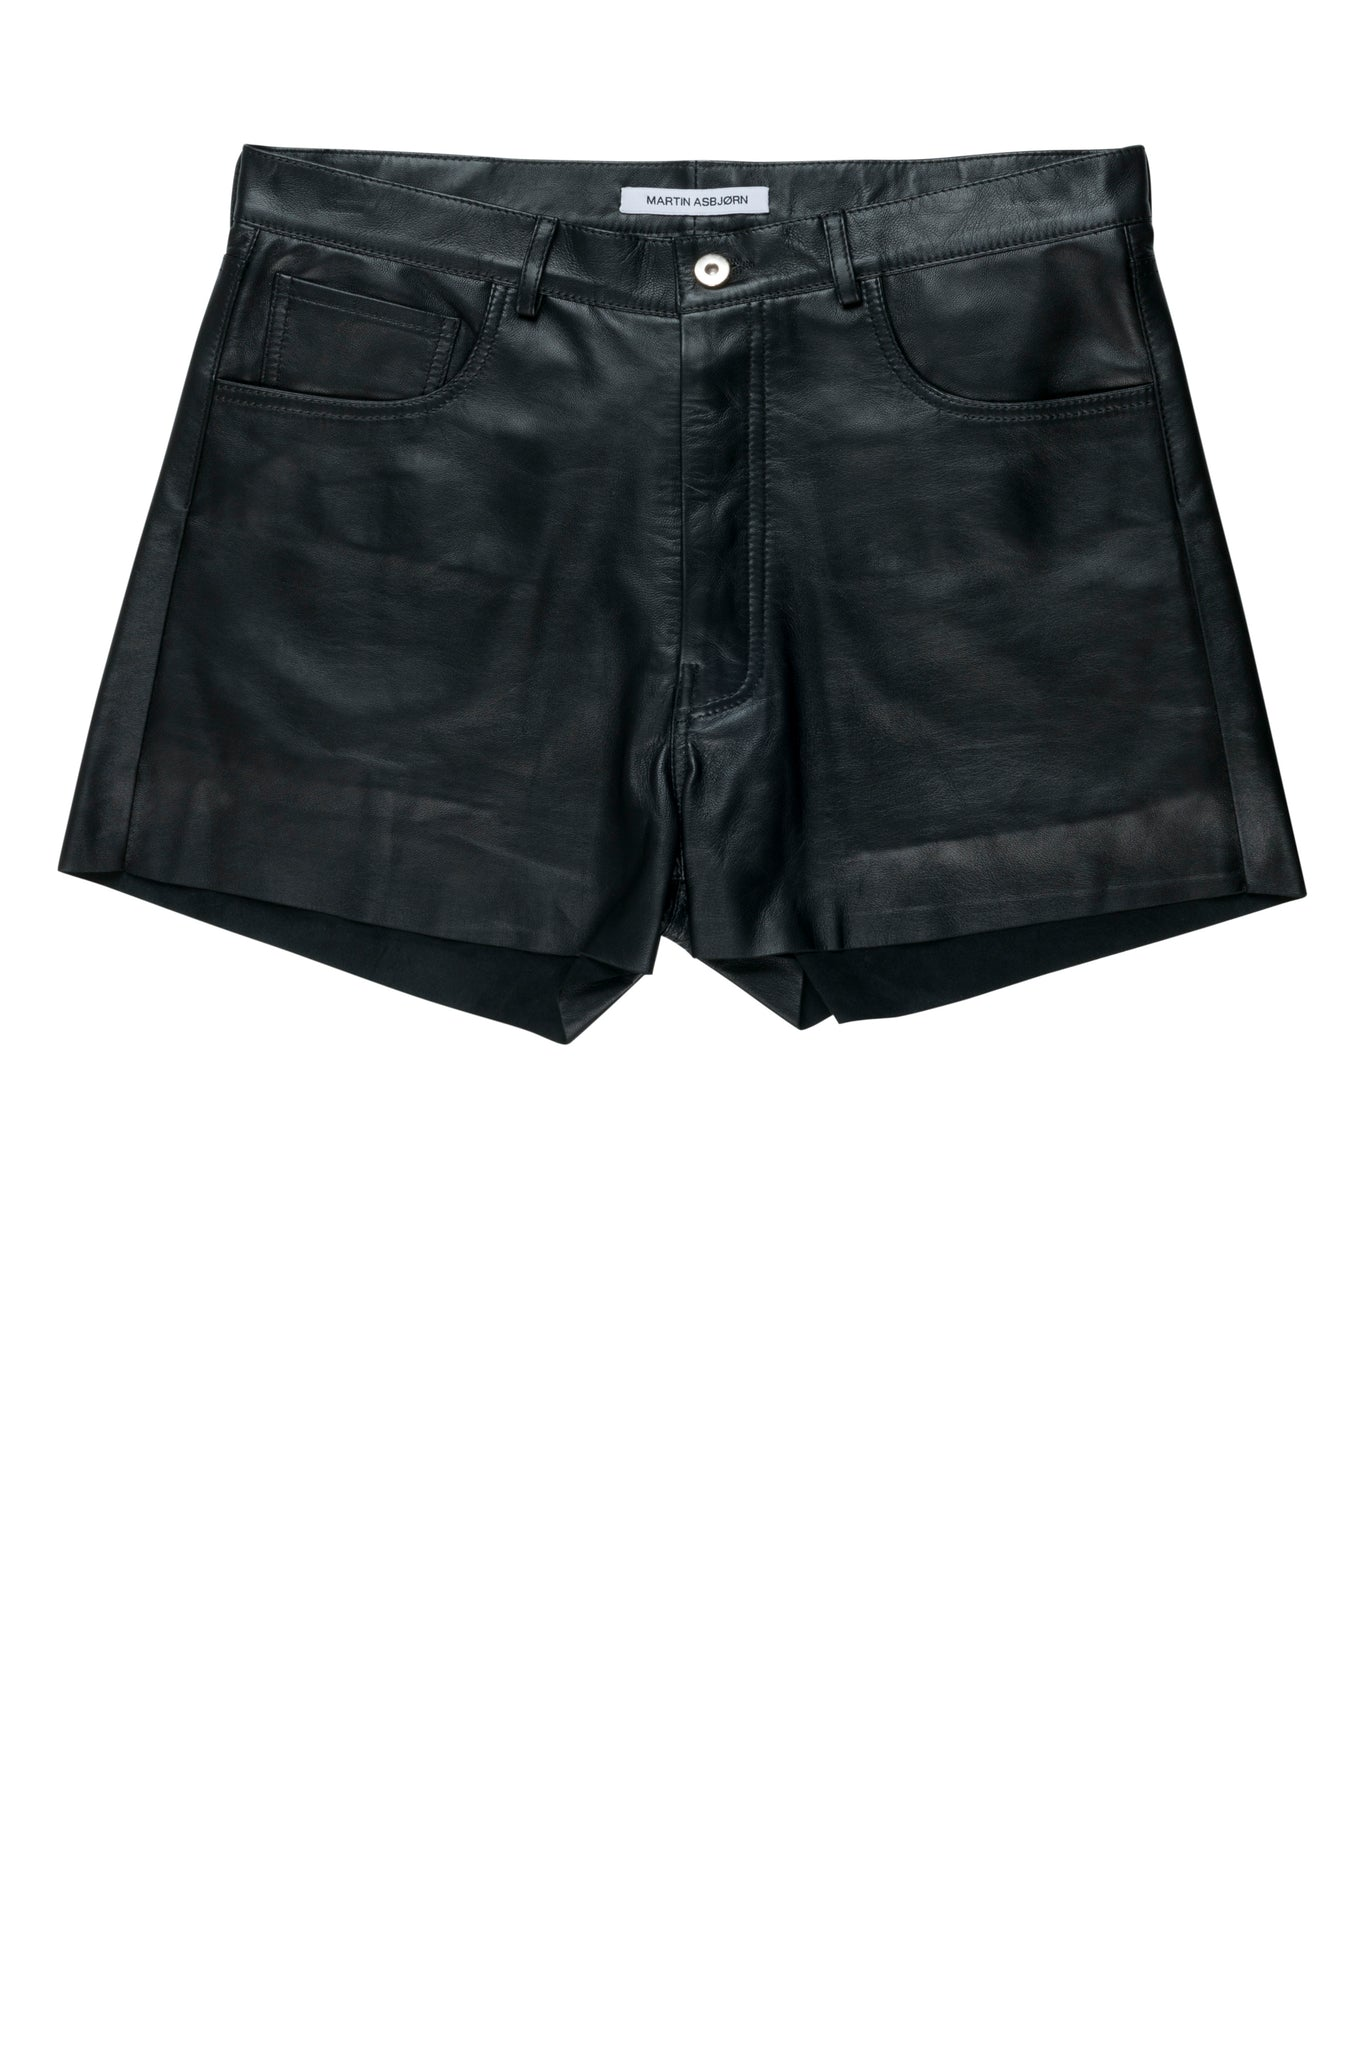 martin asbjørn ma menswear ss20 spring20 napa leather shorts cinch strap detail